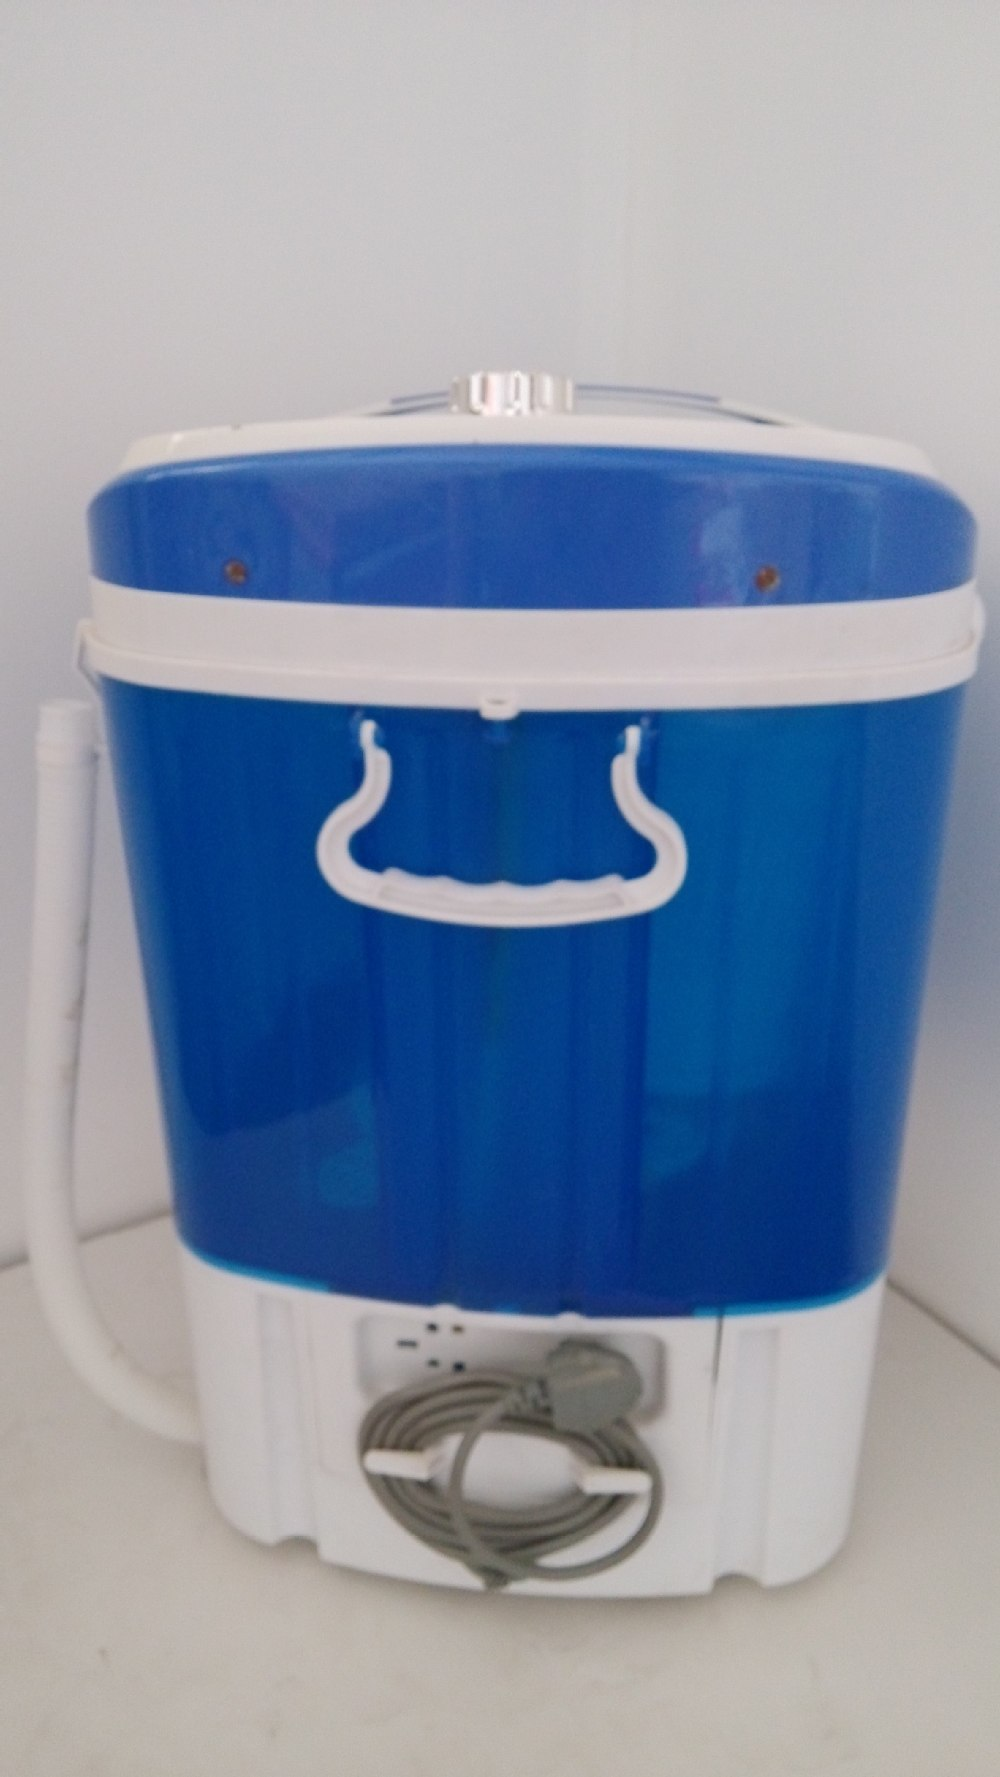 2014 cheap mini washing machine with dryer for baby XPB30-8A China Ningbo factory canton fair booth NO:1.2C 17 18 19